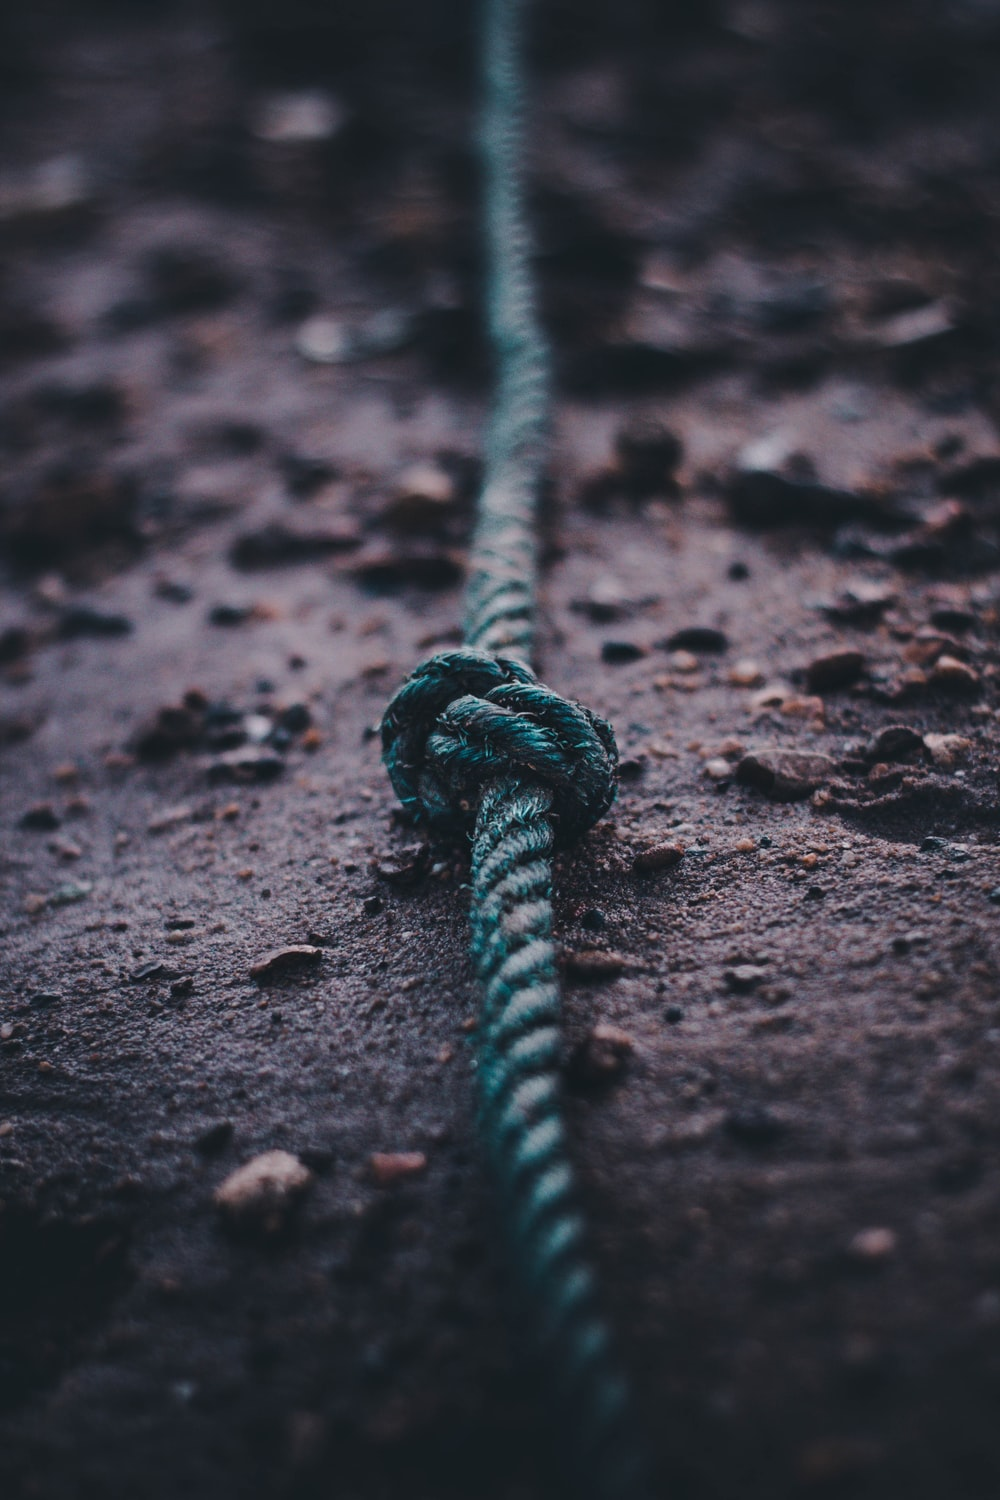 teal rope on soil